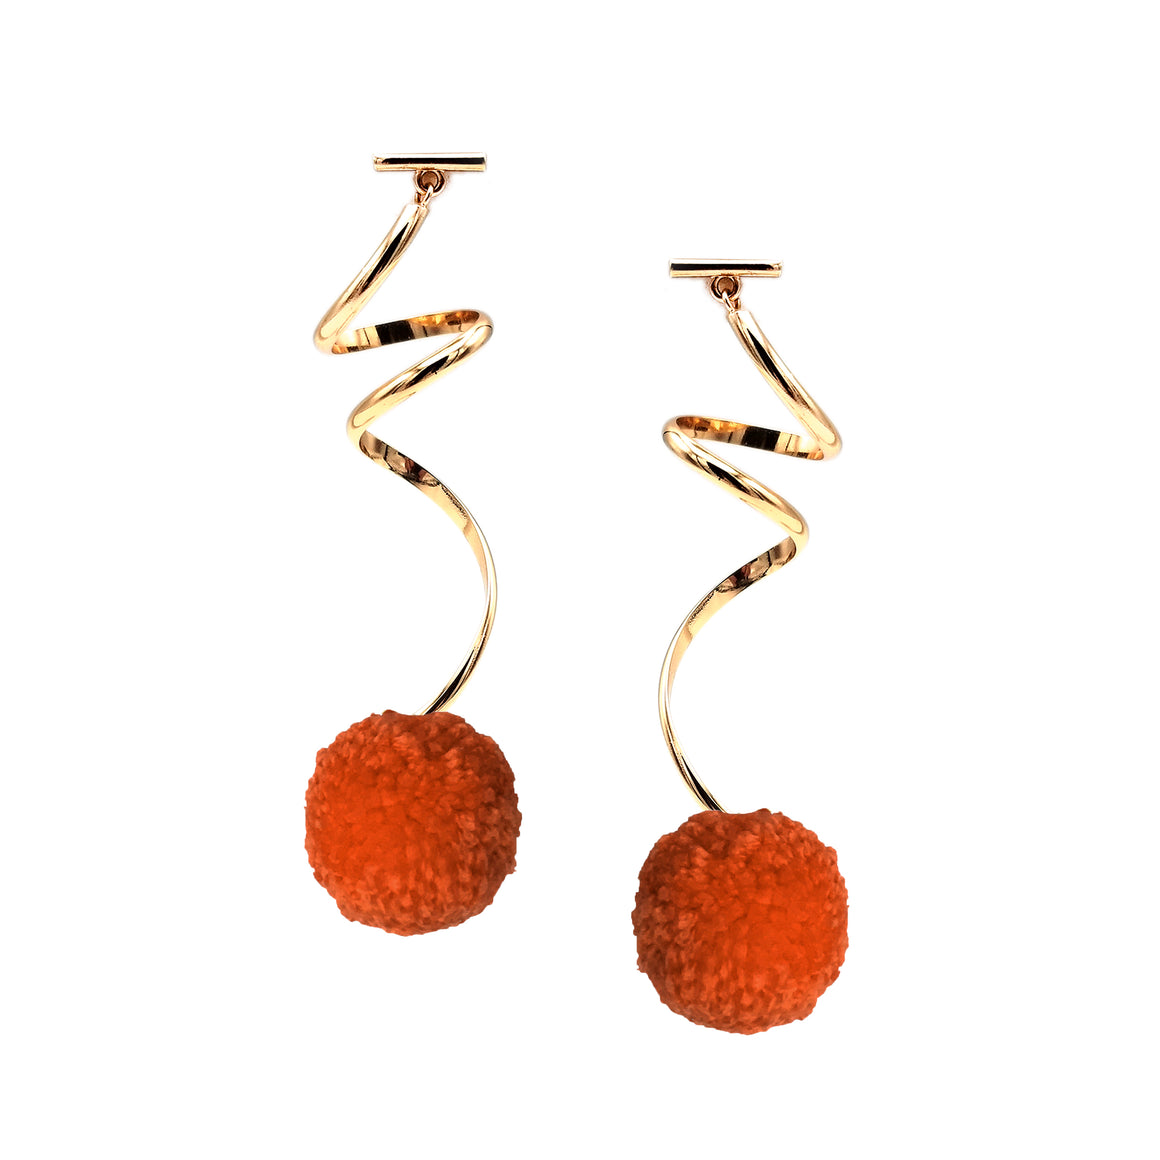 "FIRE RED 1"" YARN SPIRAL POM POM EARRINGS, Earrings, Tuleste, Tuleste"